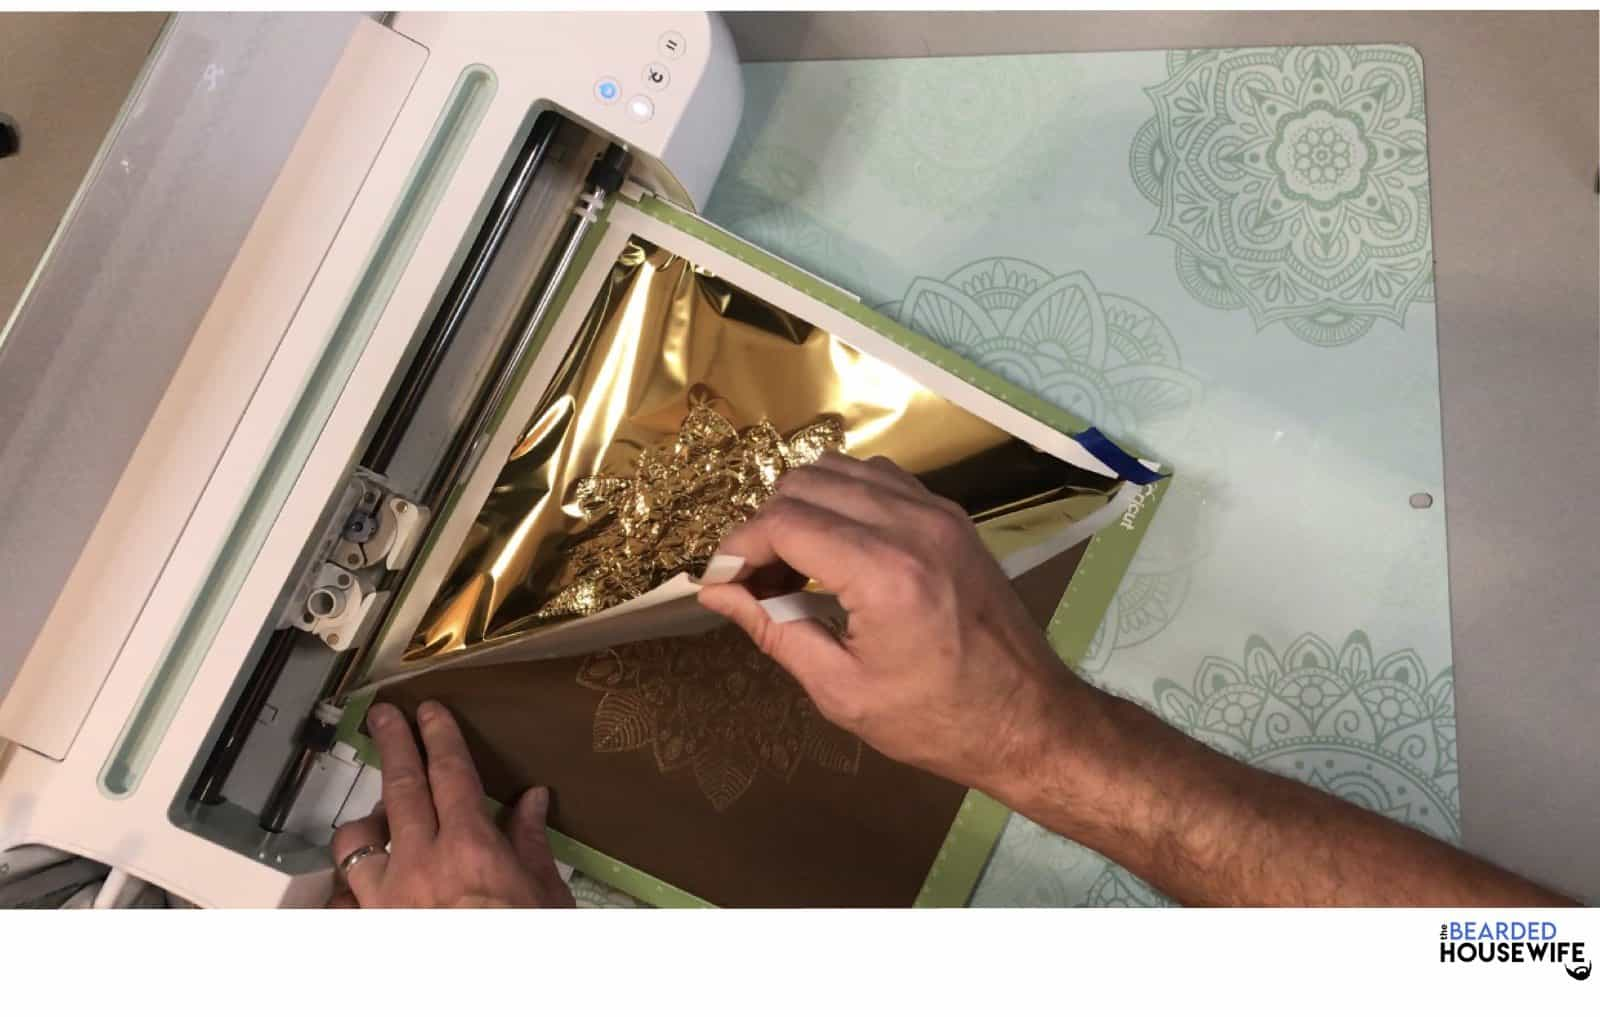 once the foiling is finished, remove the foil carefully. Don't press the arrows to unload the mat.